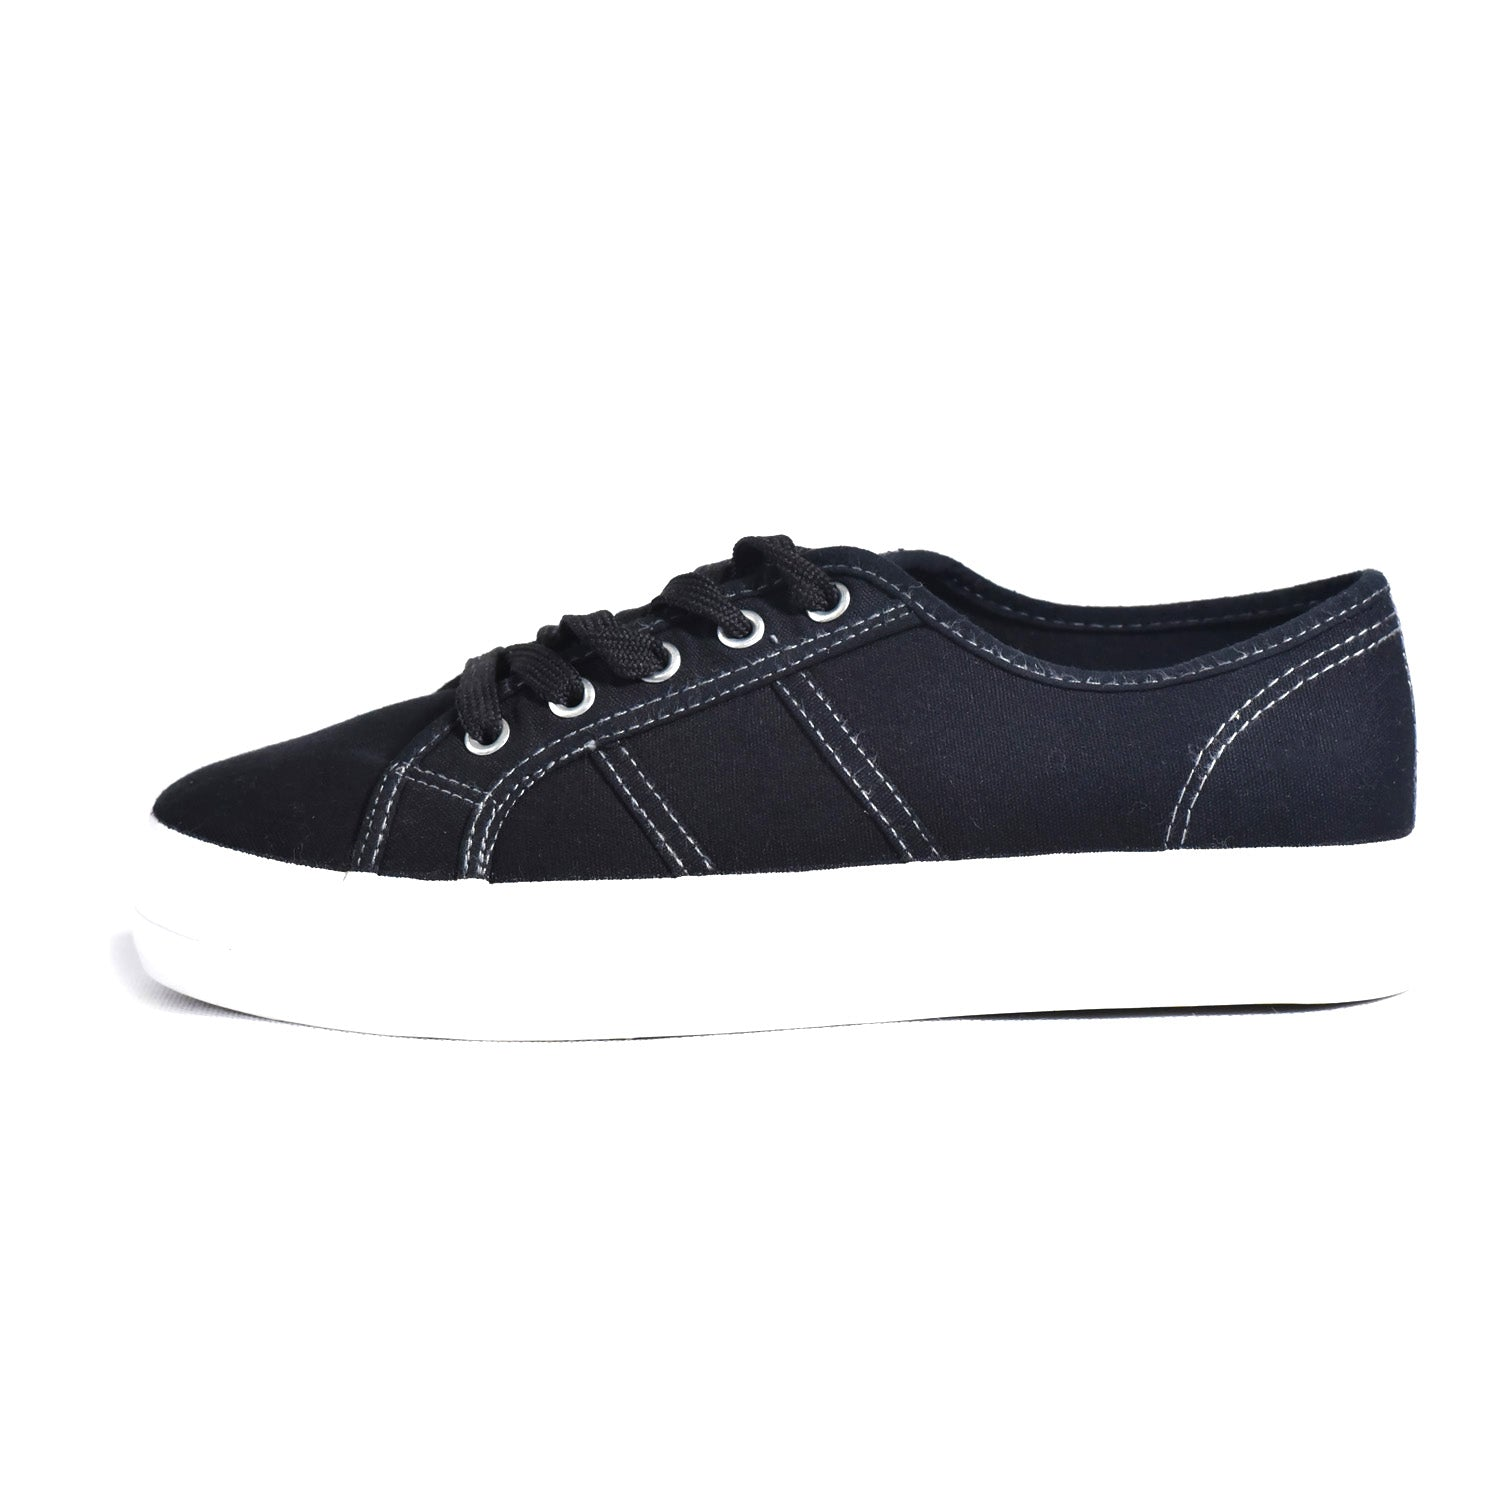 Sneakers shoe with multiple tie